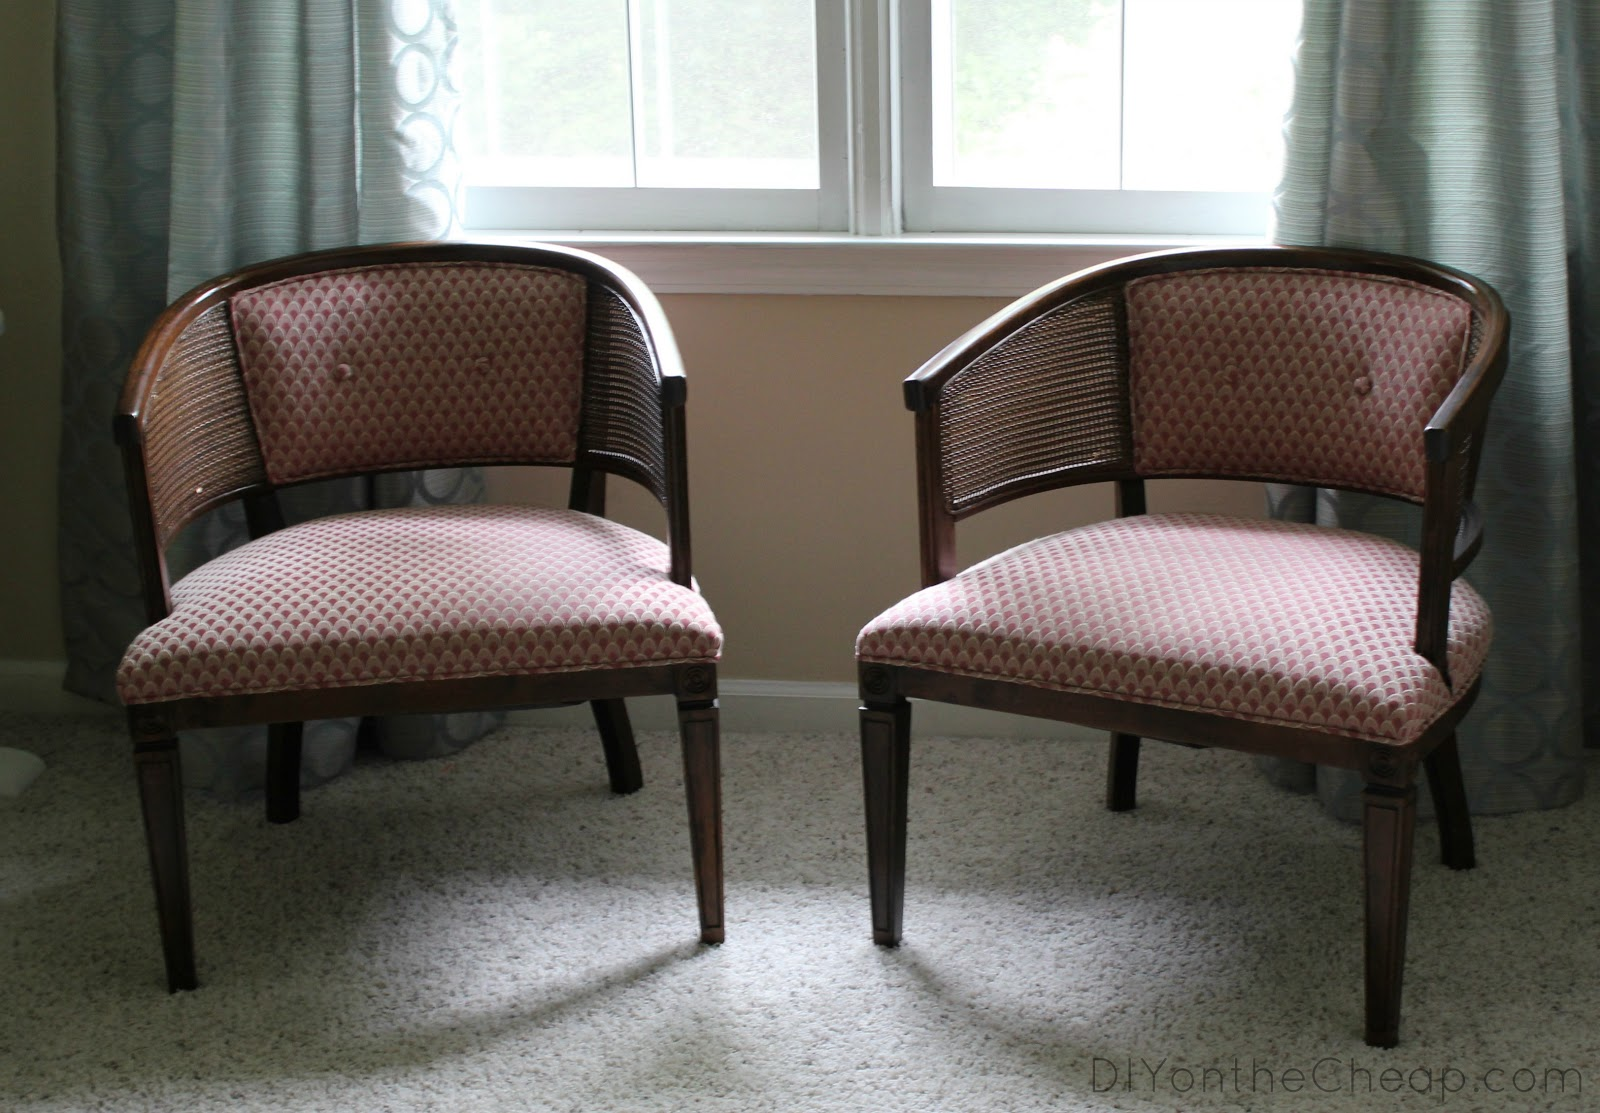 Reupholstered Chairs Before After